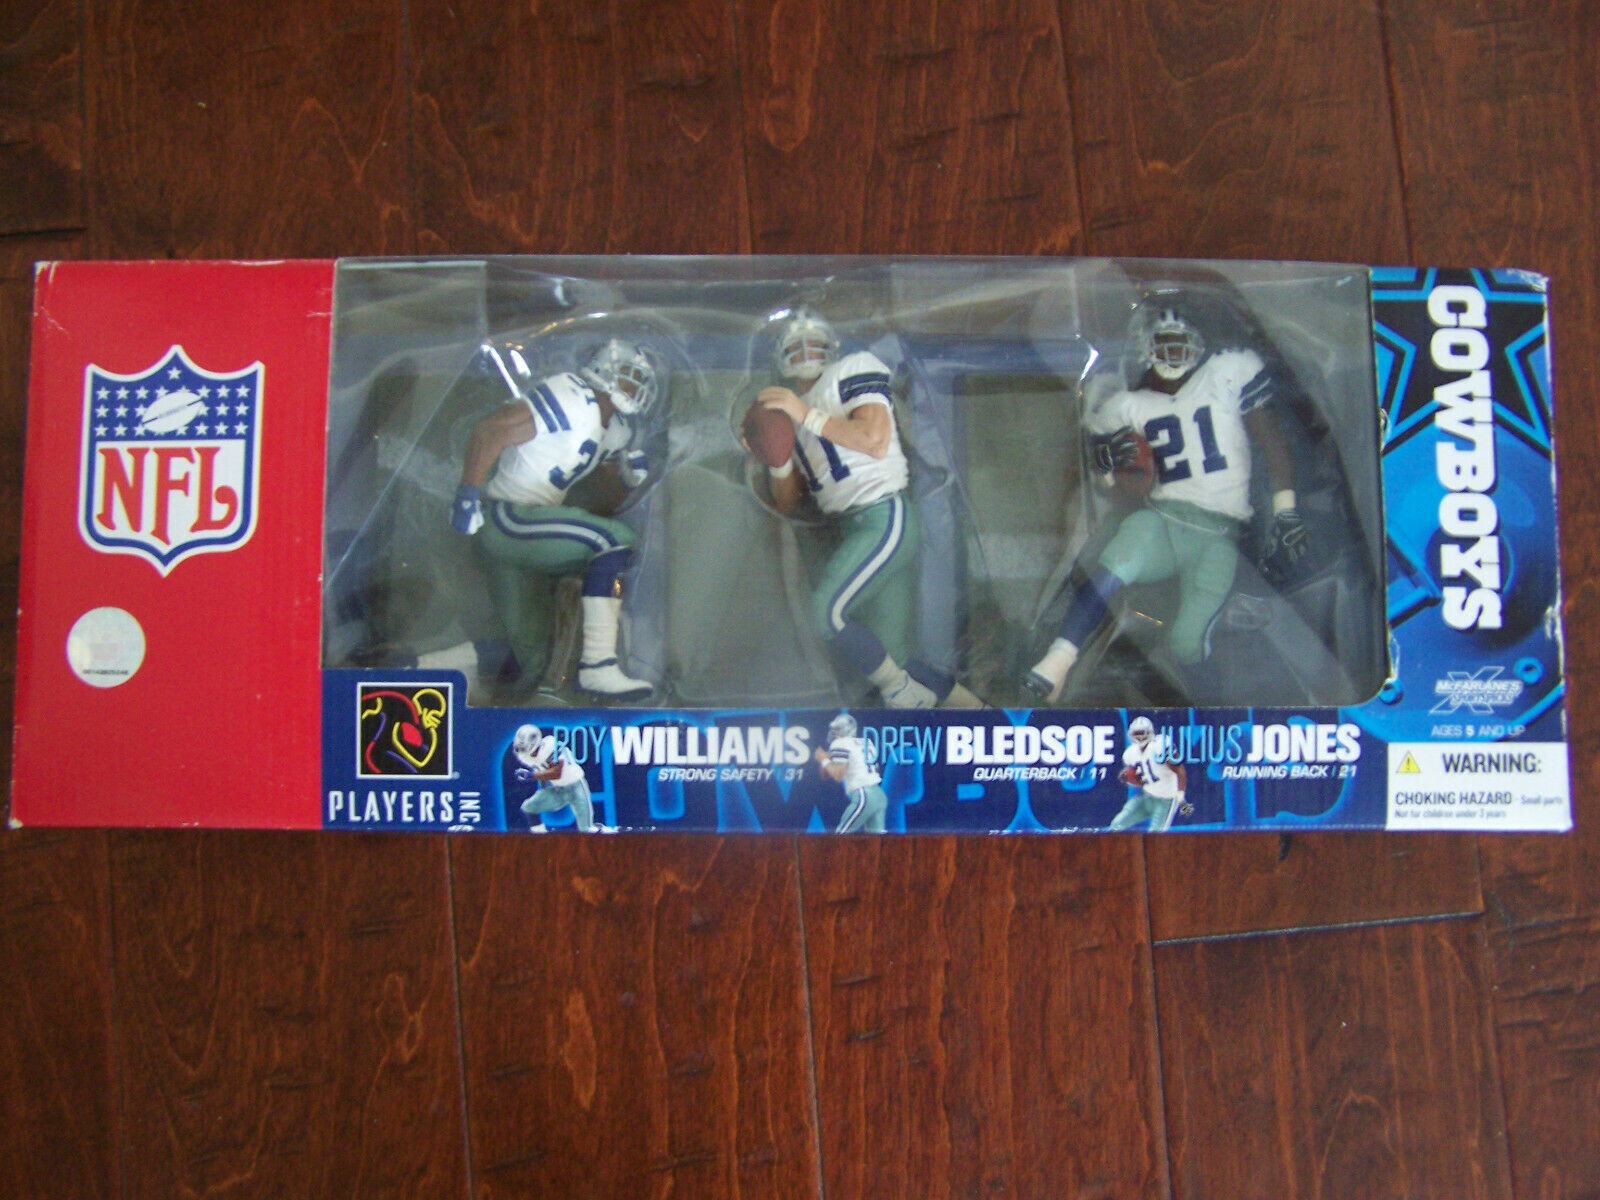 McFarlane Dallas Cowboys boxed set-Bledsoe, Williams, and Jones action figures